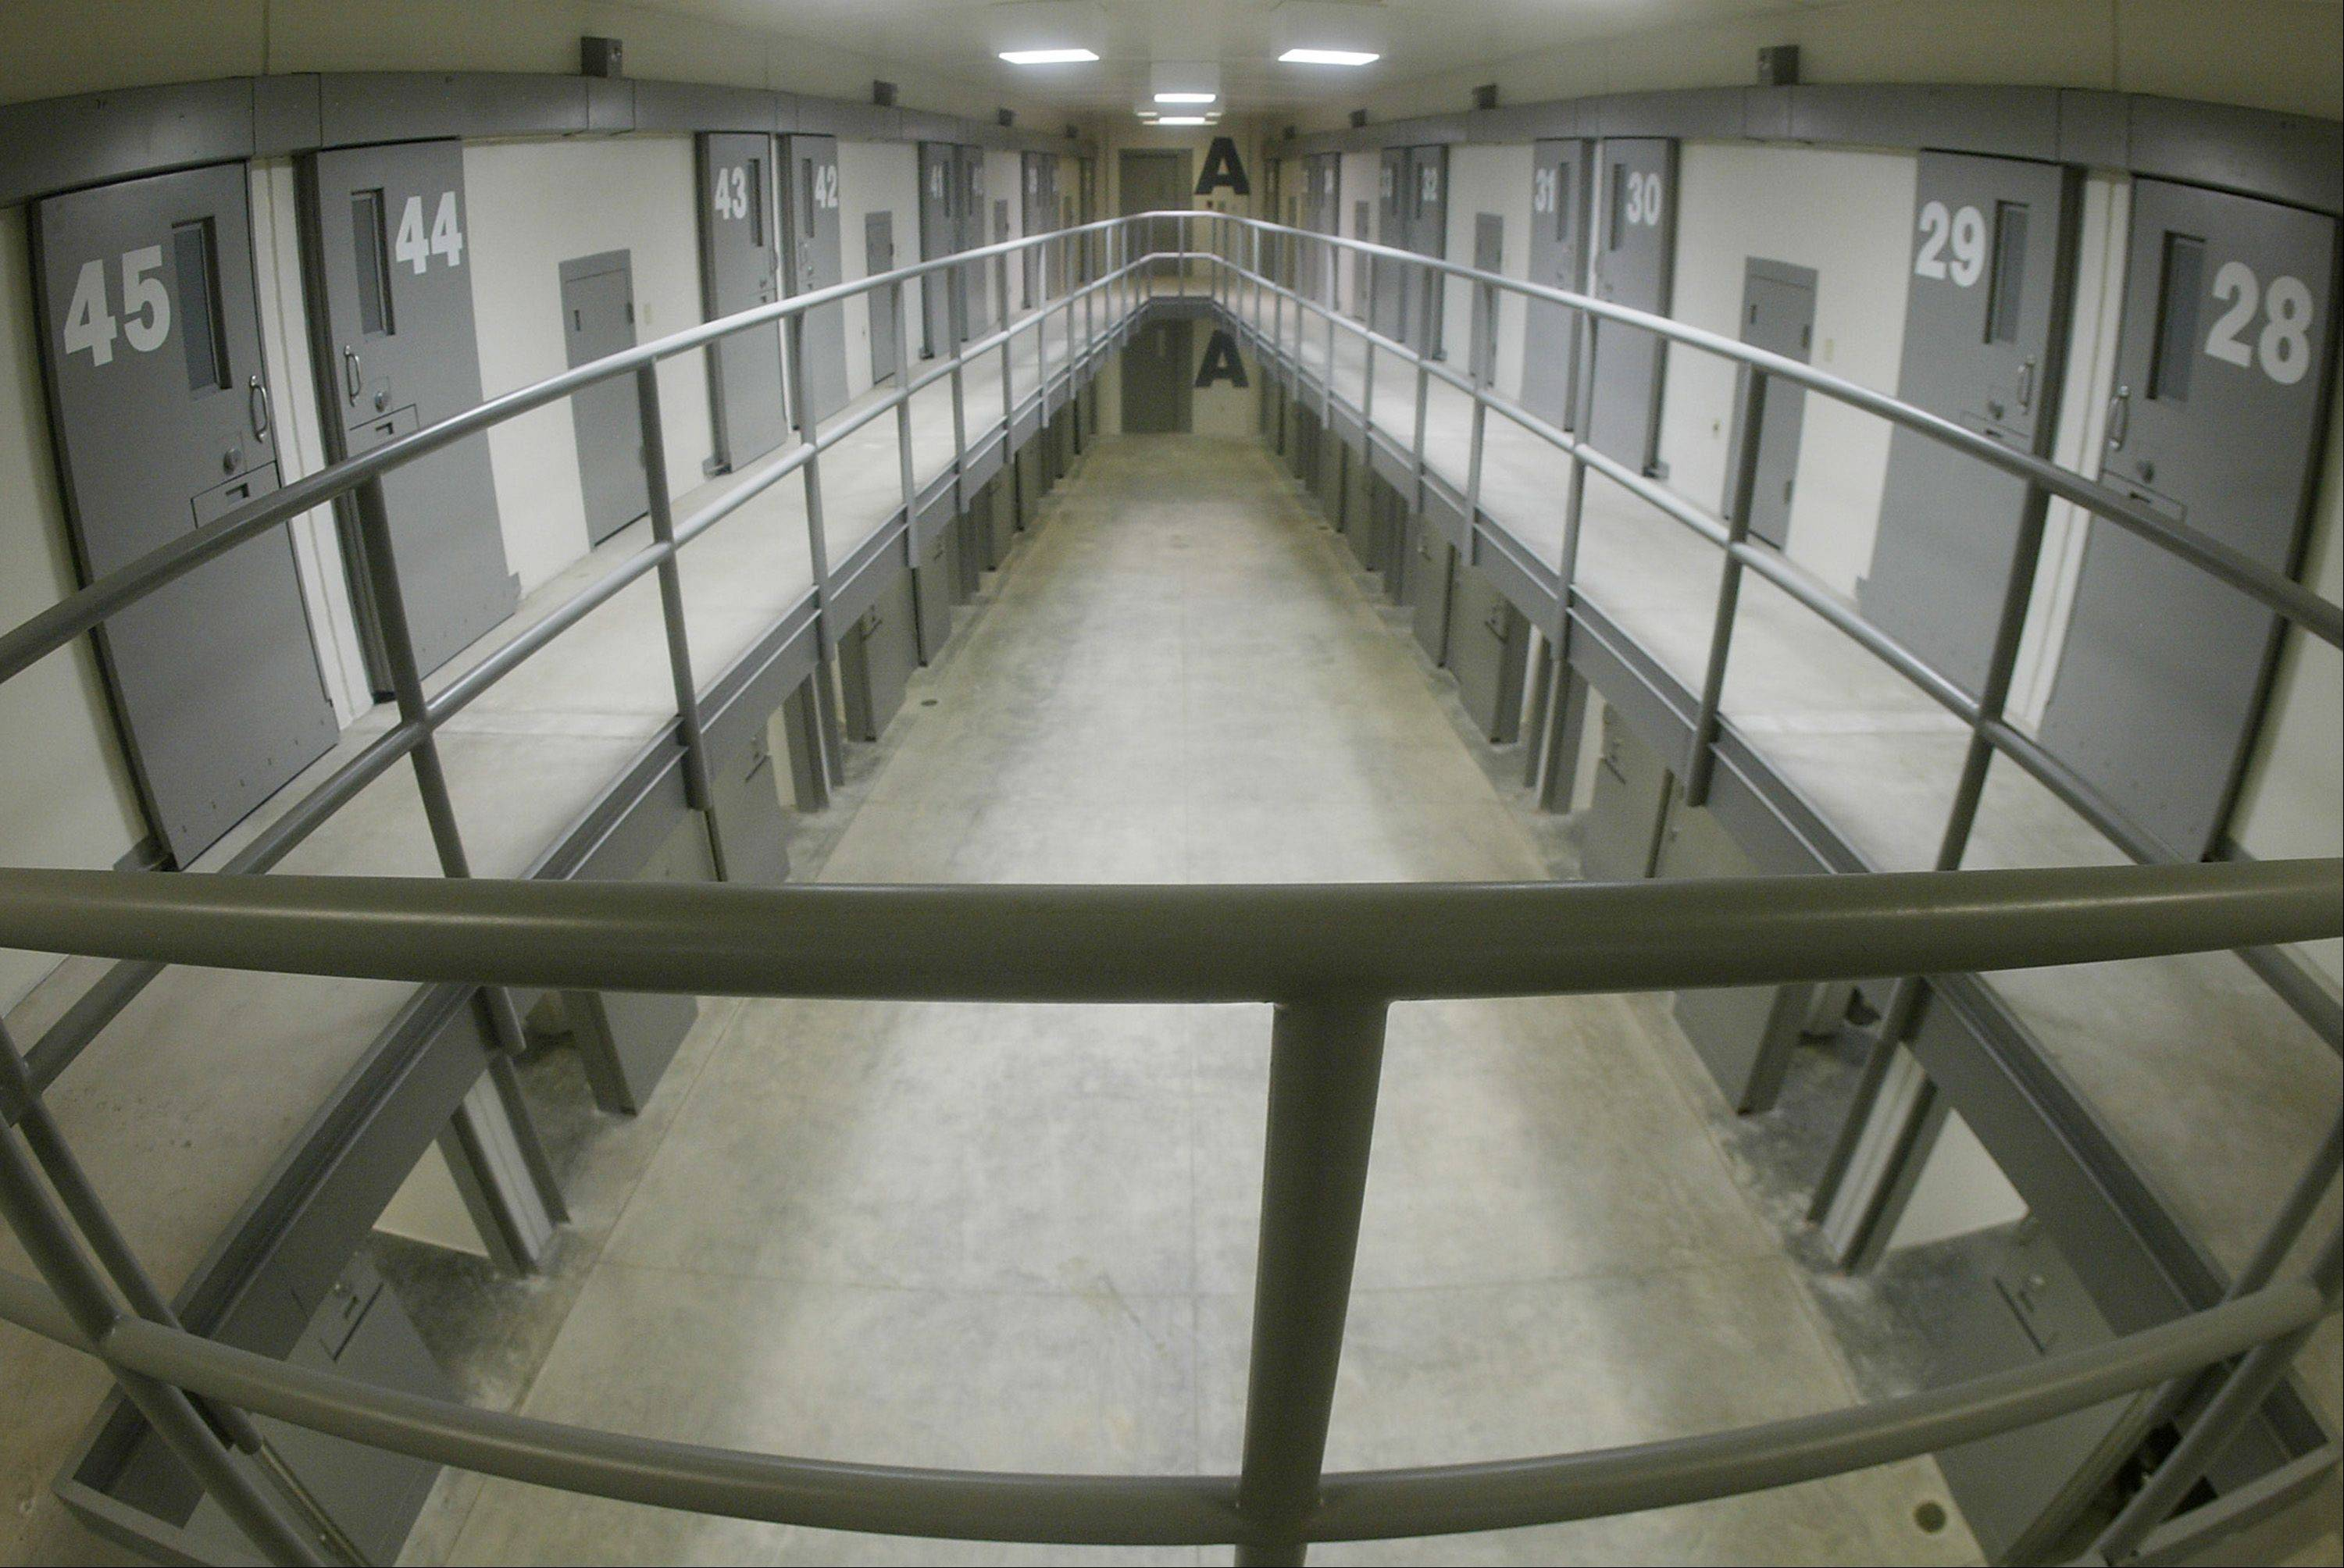 Wing A of Housing Unit 1 in the 1,600-inmate maximum-security prison in Thomson.